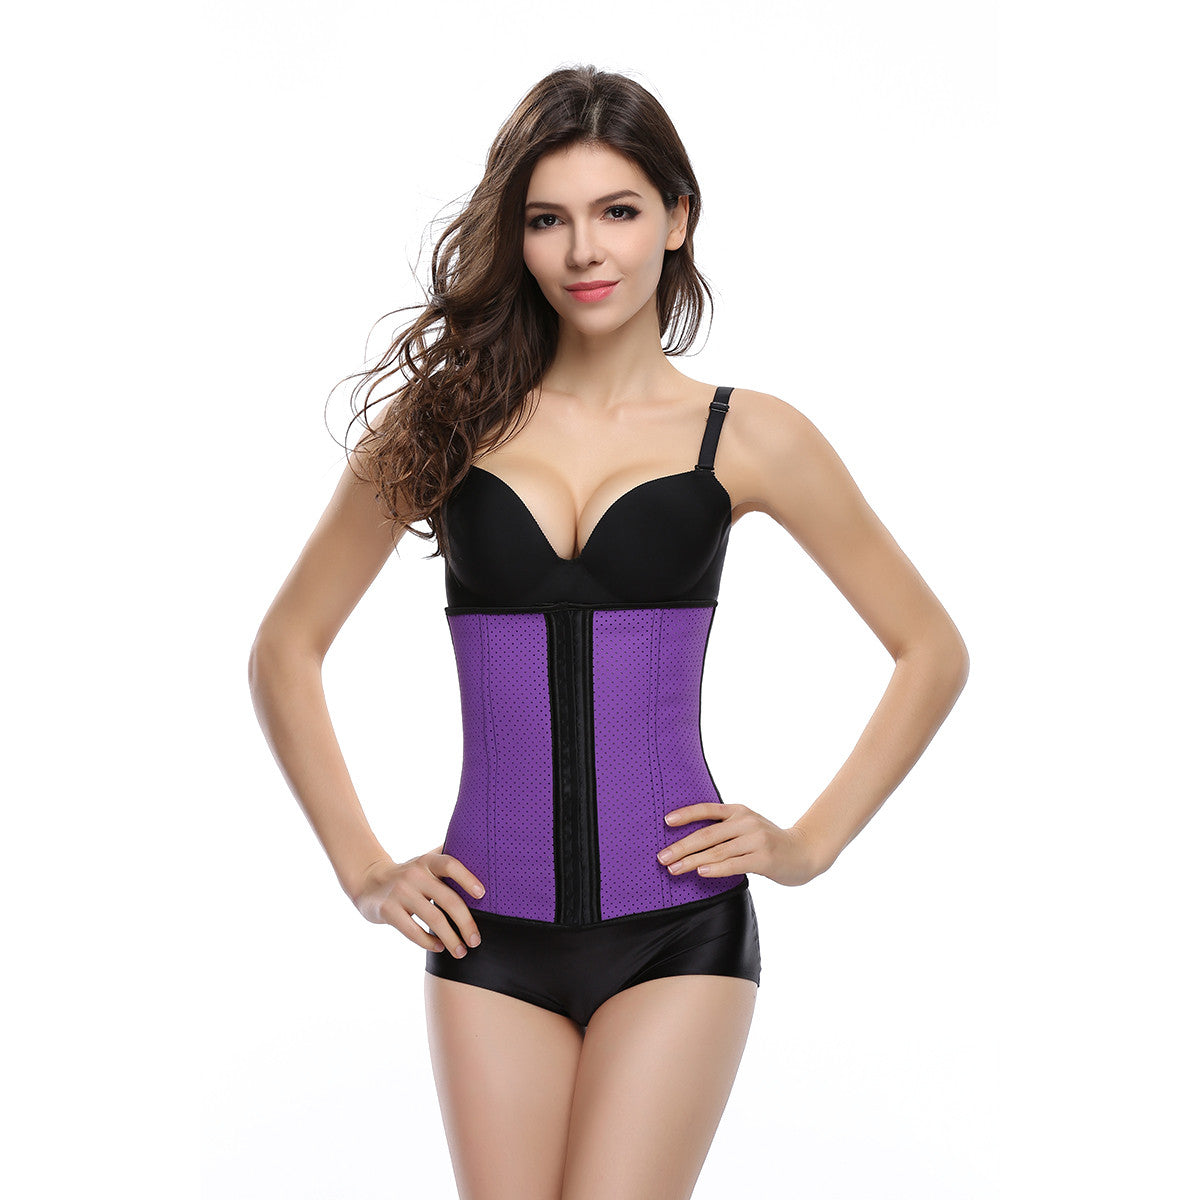 Women Breathable Holes Thin Underbust Corset Waist Trainer Cincher Body Shaper Shapewear